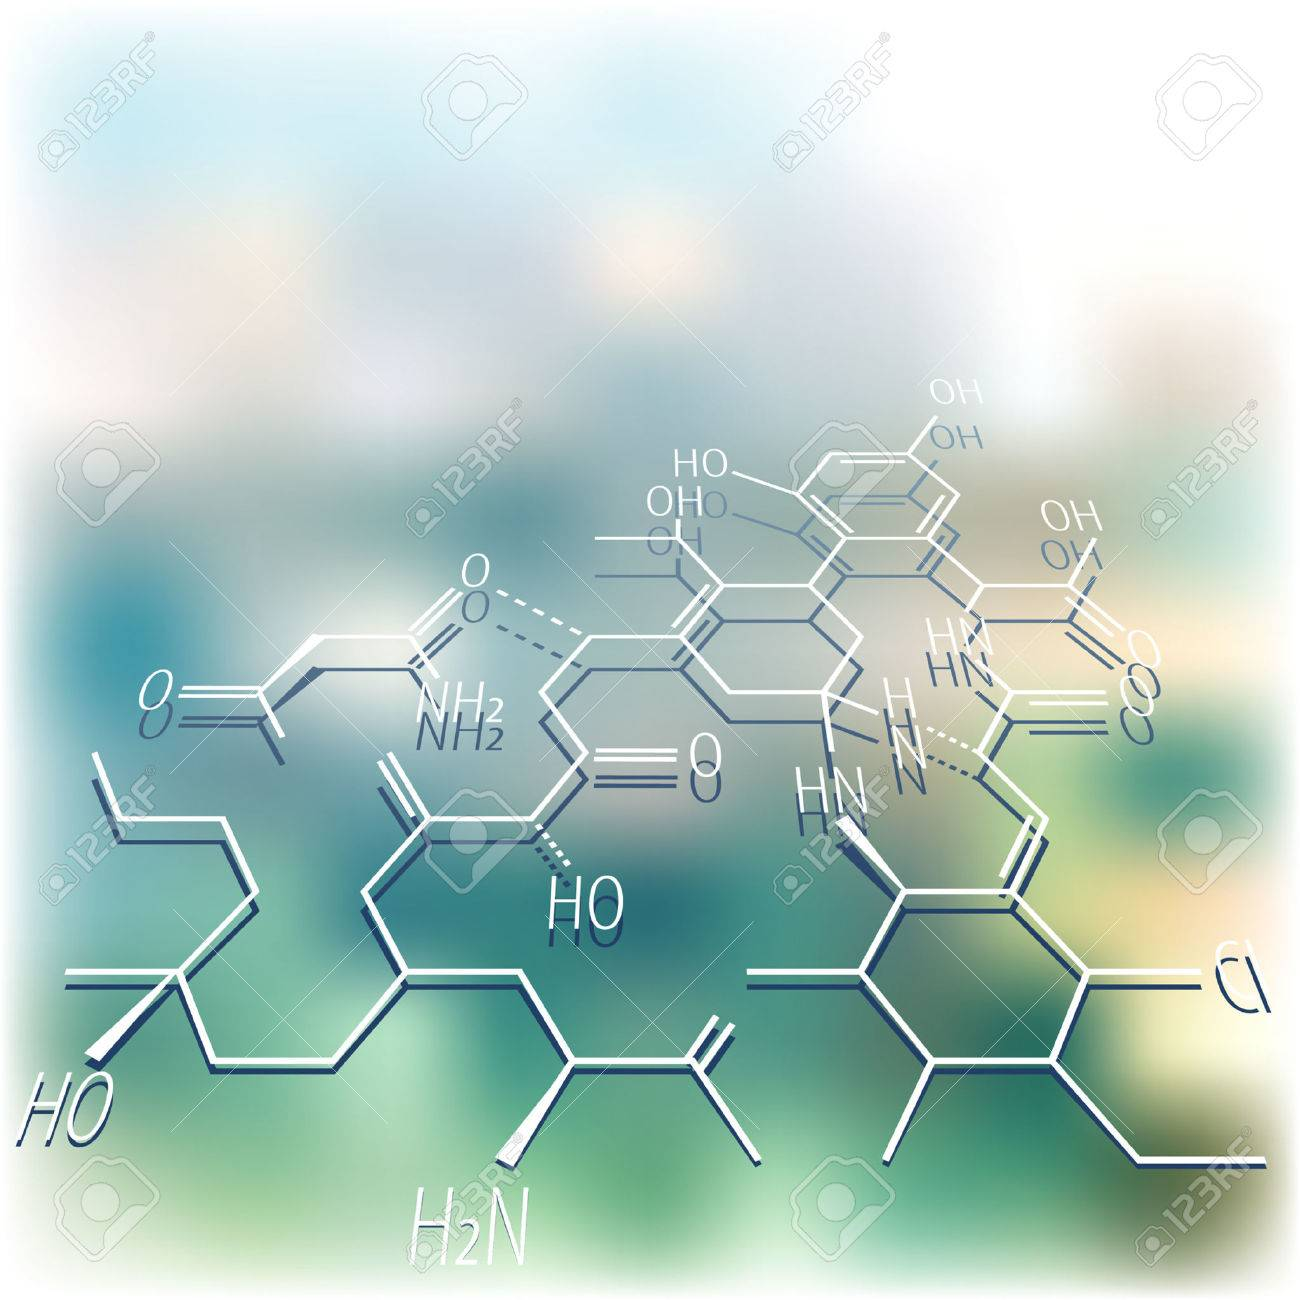 vector abstract mackground with chemistry structure Stock Vector - 8846341